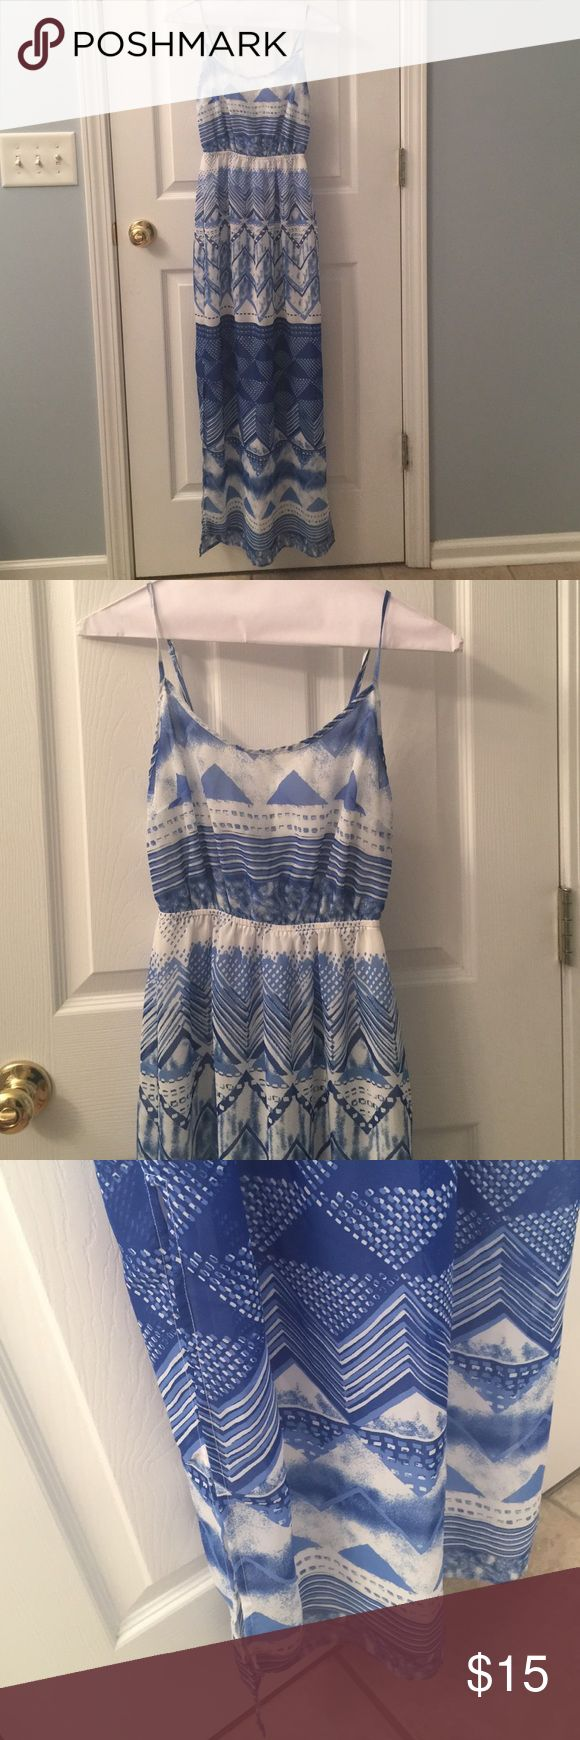 Blue and White Maxi Dress! Old Navy Blue and White Maxi Dress.  Fully lined with adjustable straps, clinched waist, and side splits.  Beautiful dress. Old Navy Dresses Maxi